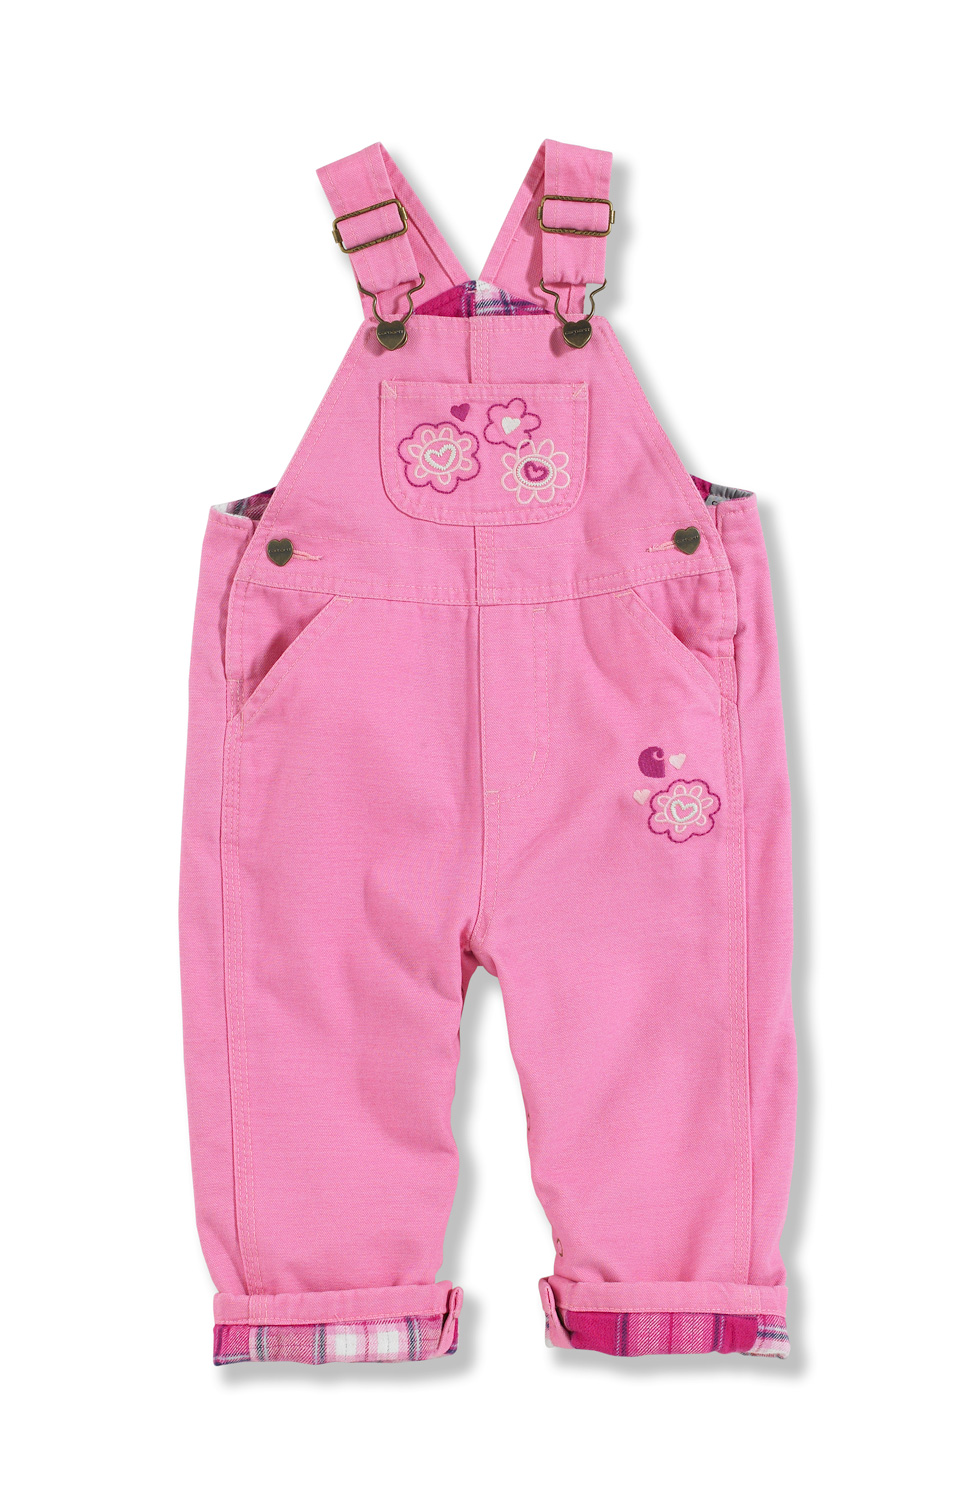 Carhartt Infant Girl's Washed Microsanded Canvas Overalls CM9629